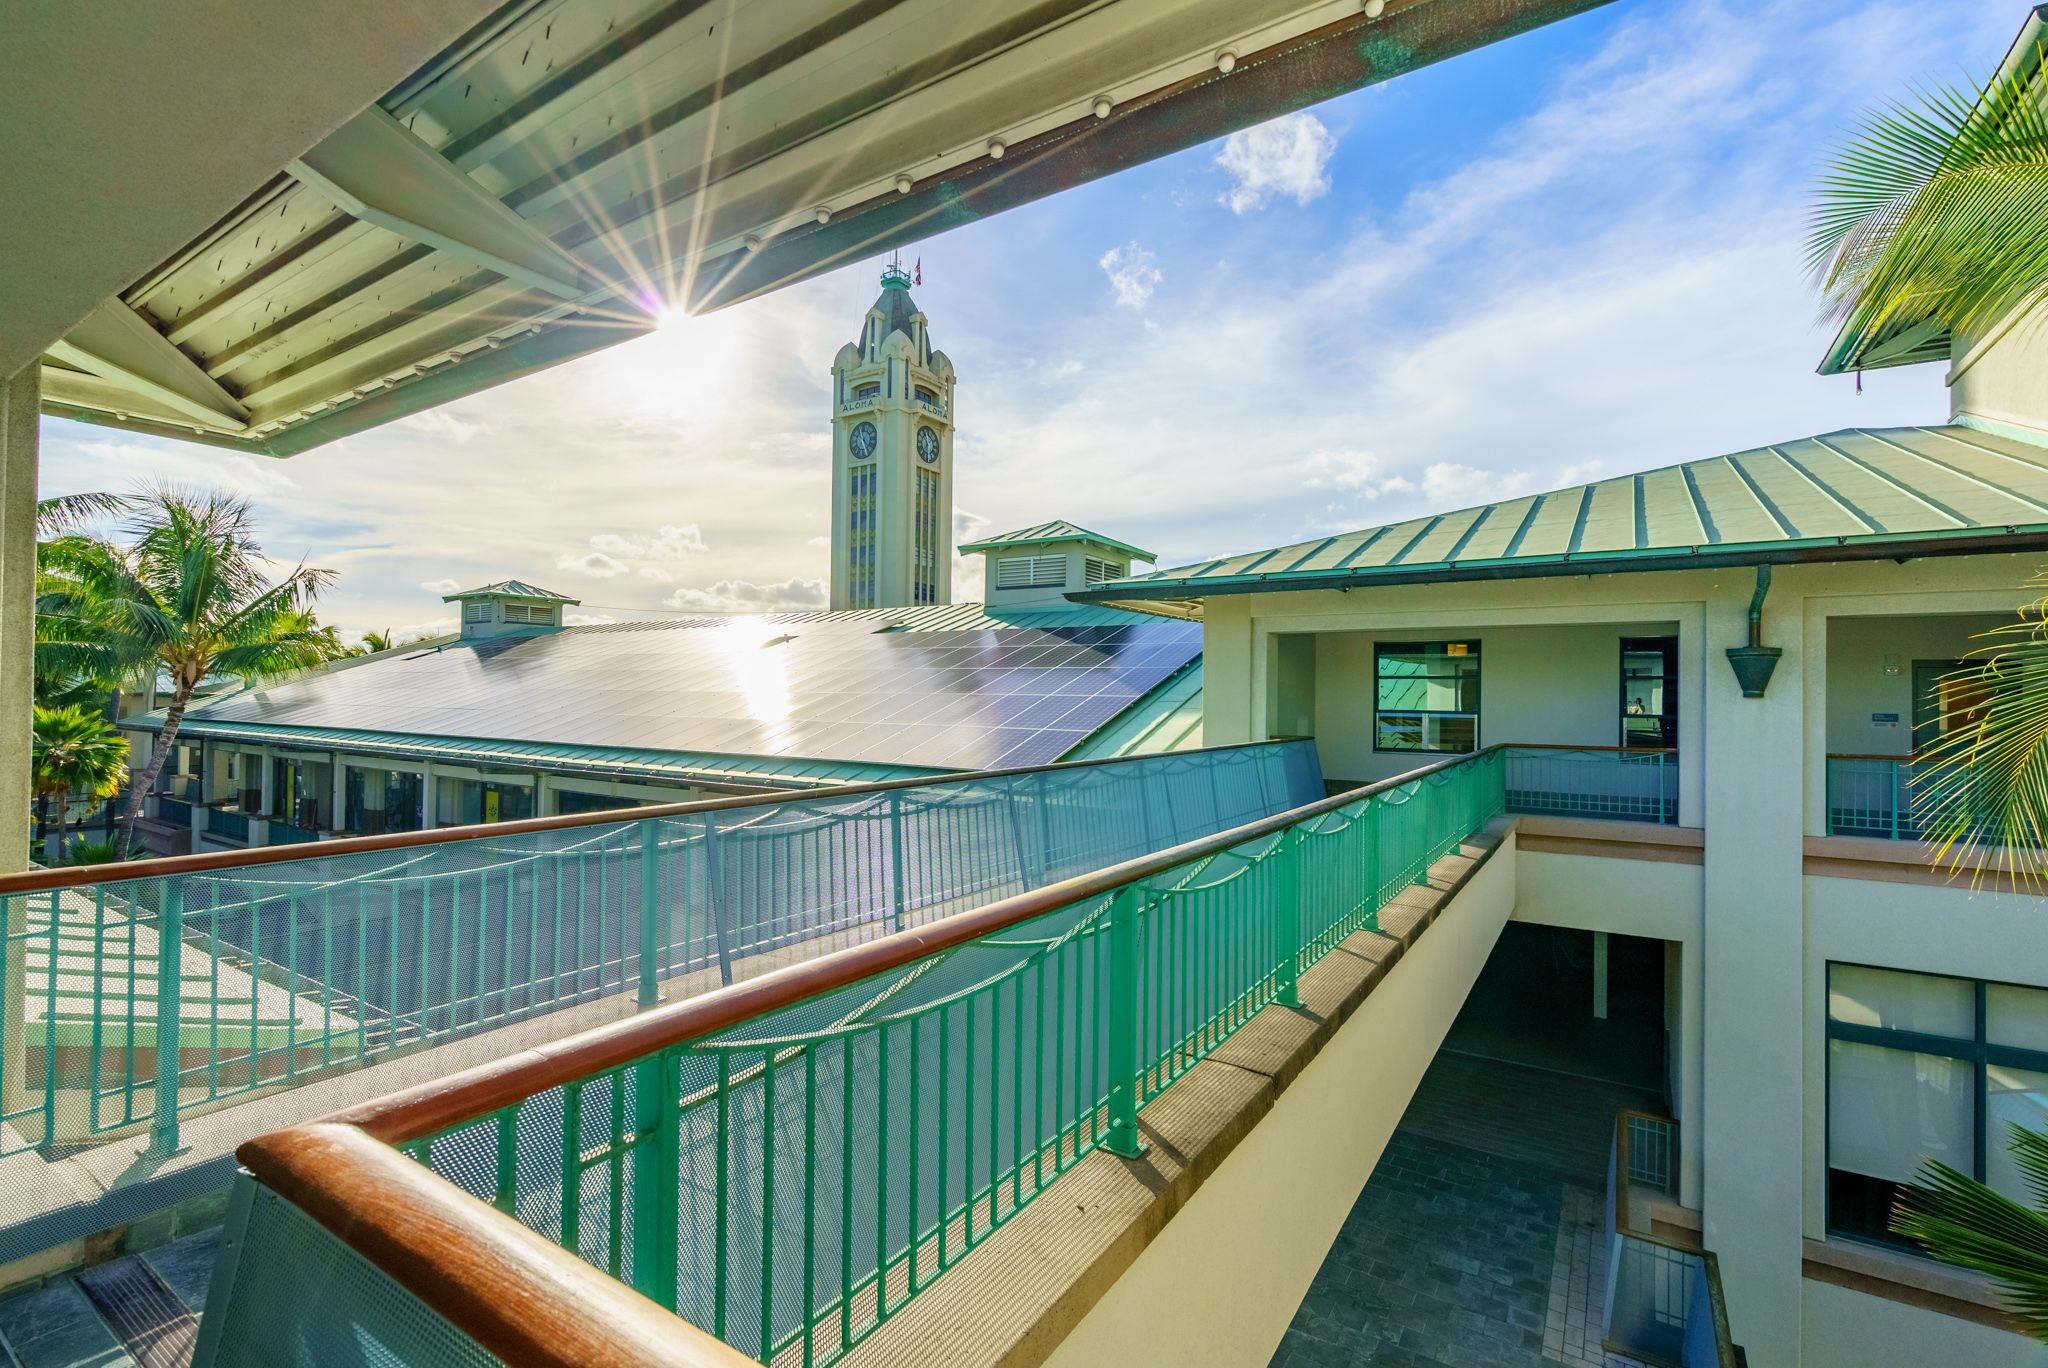 HPU- Aloha Tower Marketplace Dormitory Retrofit